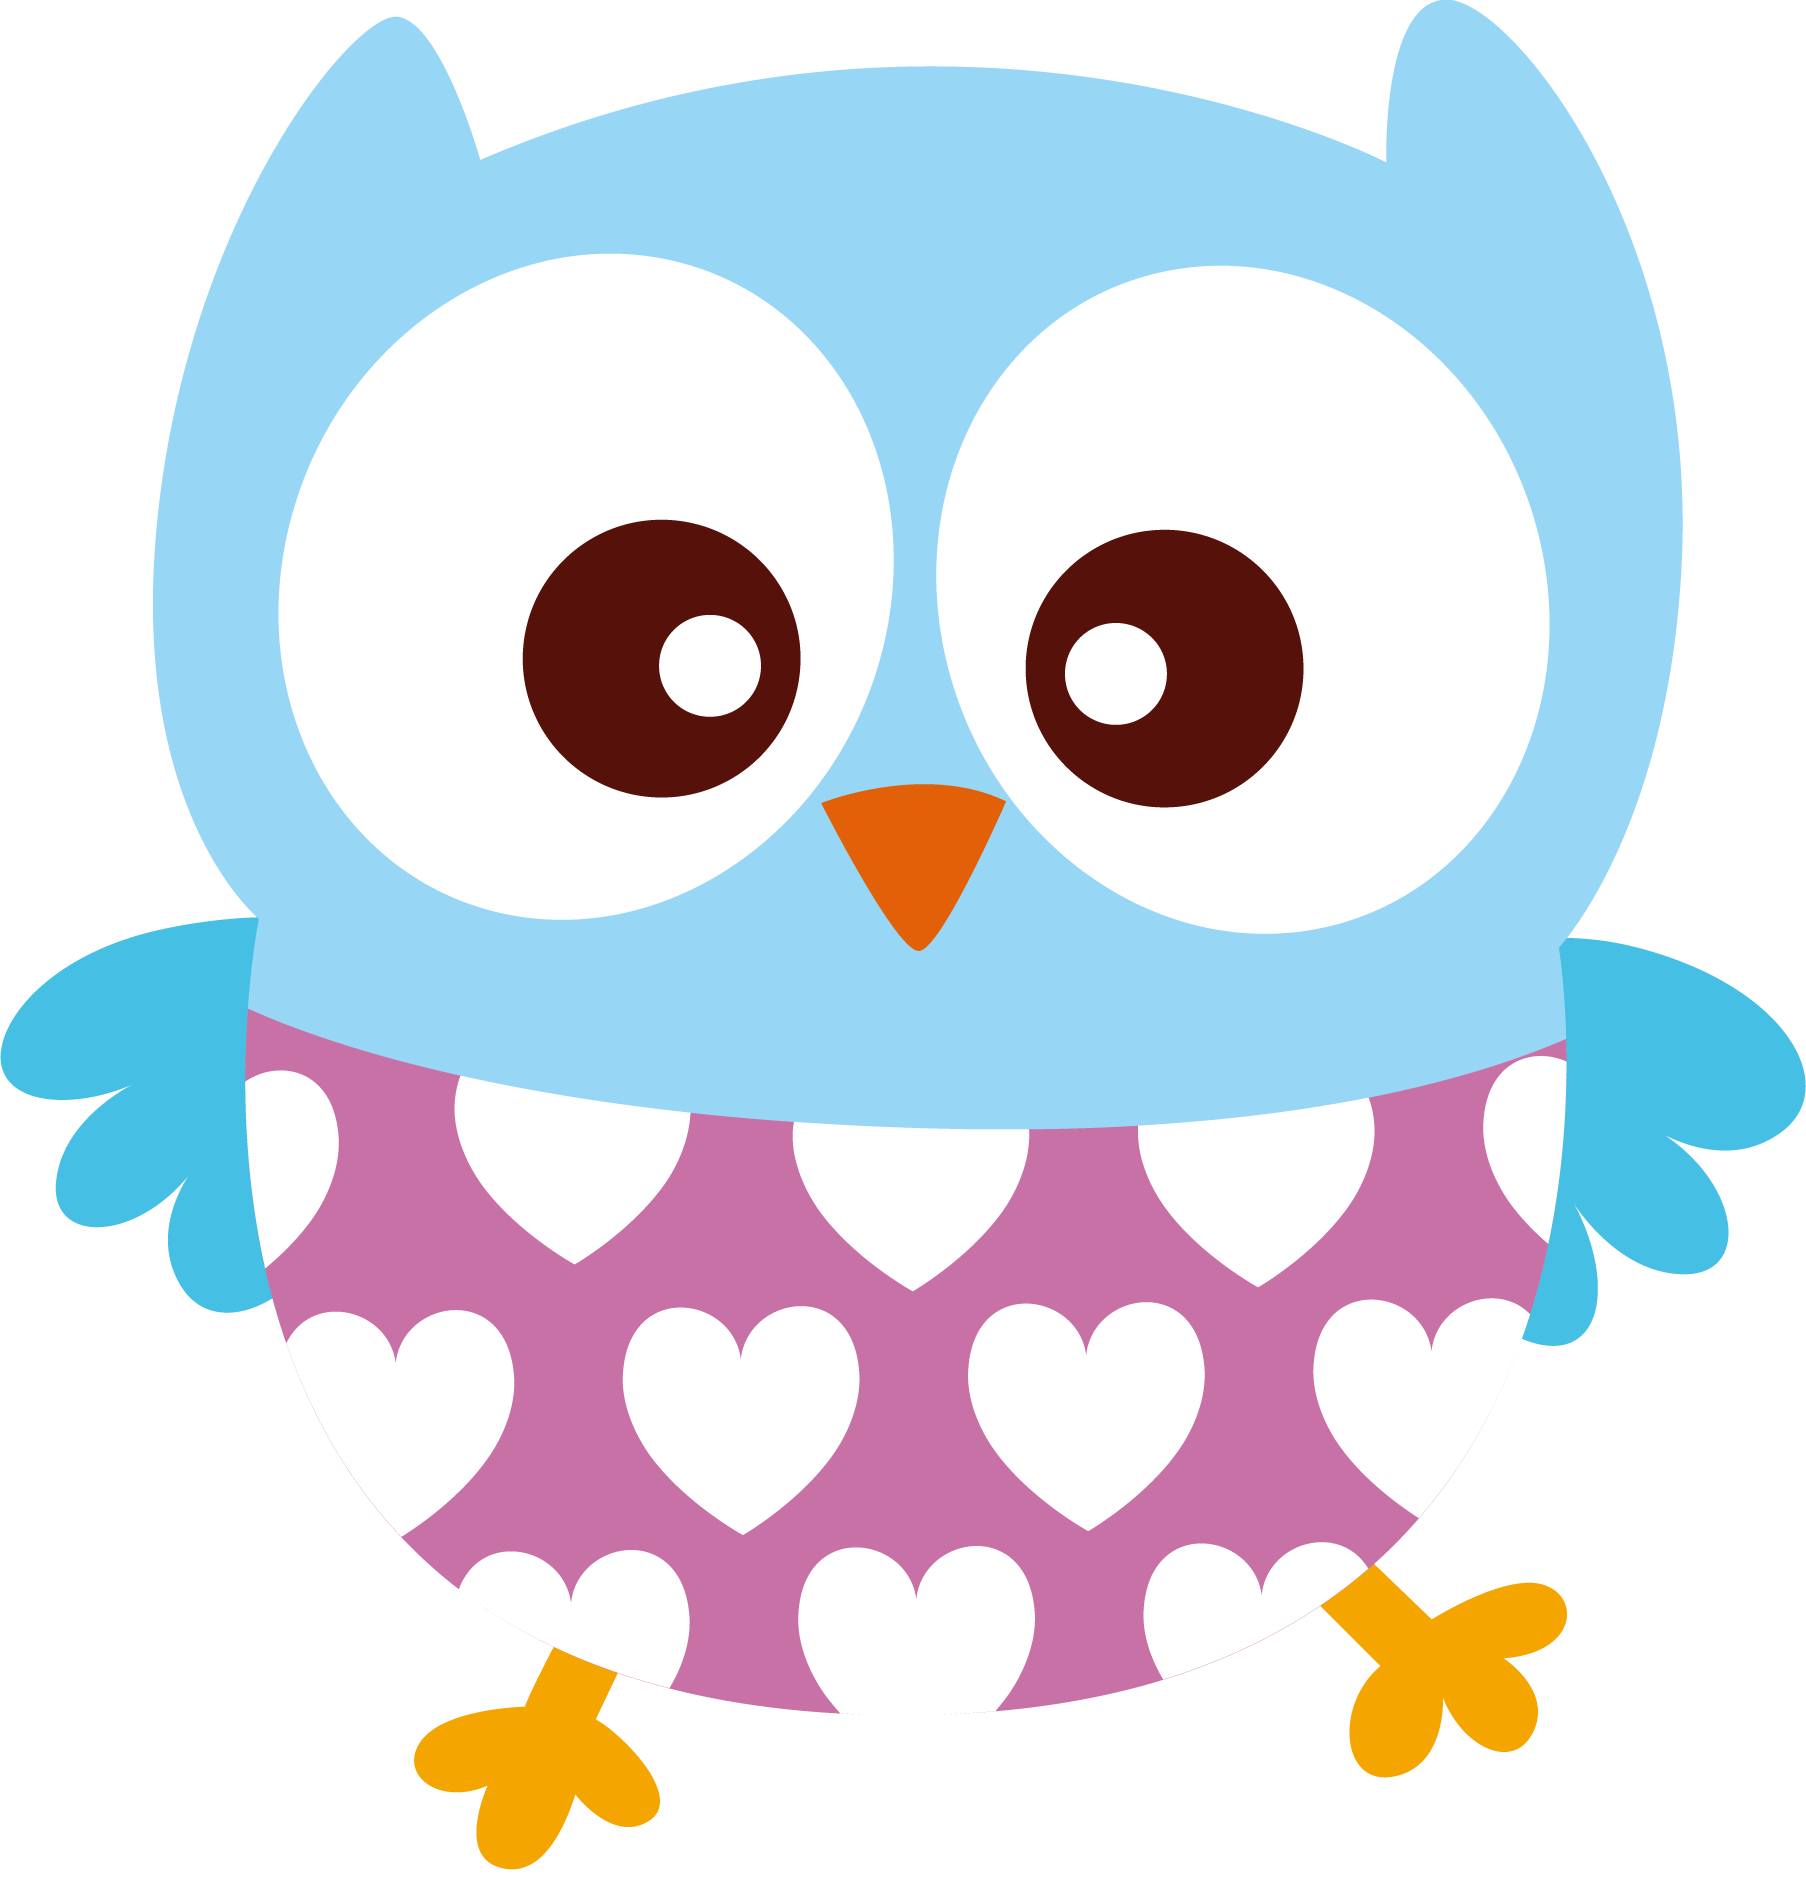 Cute owl holding a flower clipart svg free download Corujas - BB 0090_08.png - Minus   Clip Art-Animals/Birds/Fish, Etc ... svg free download